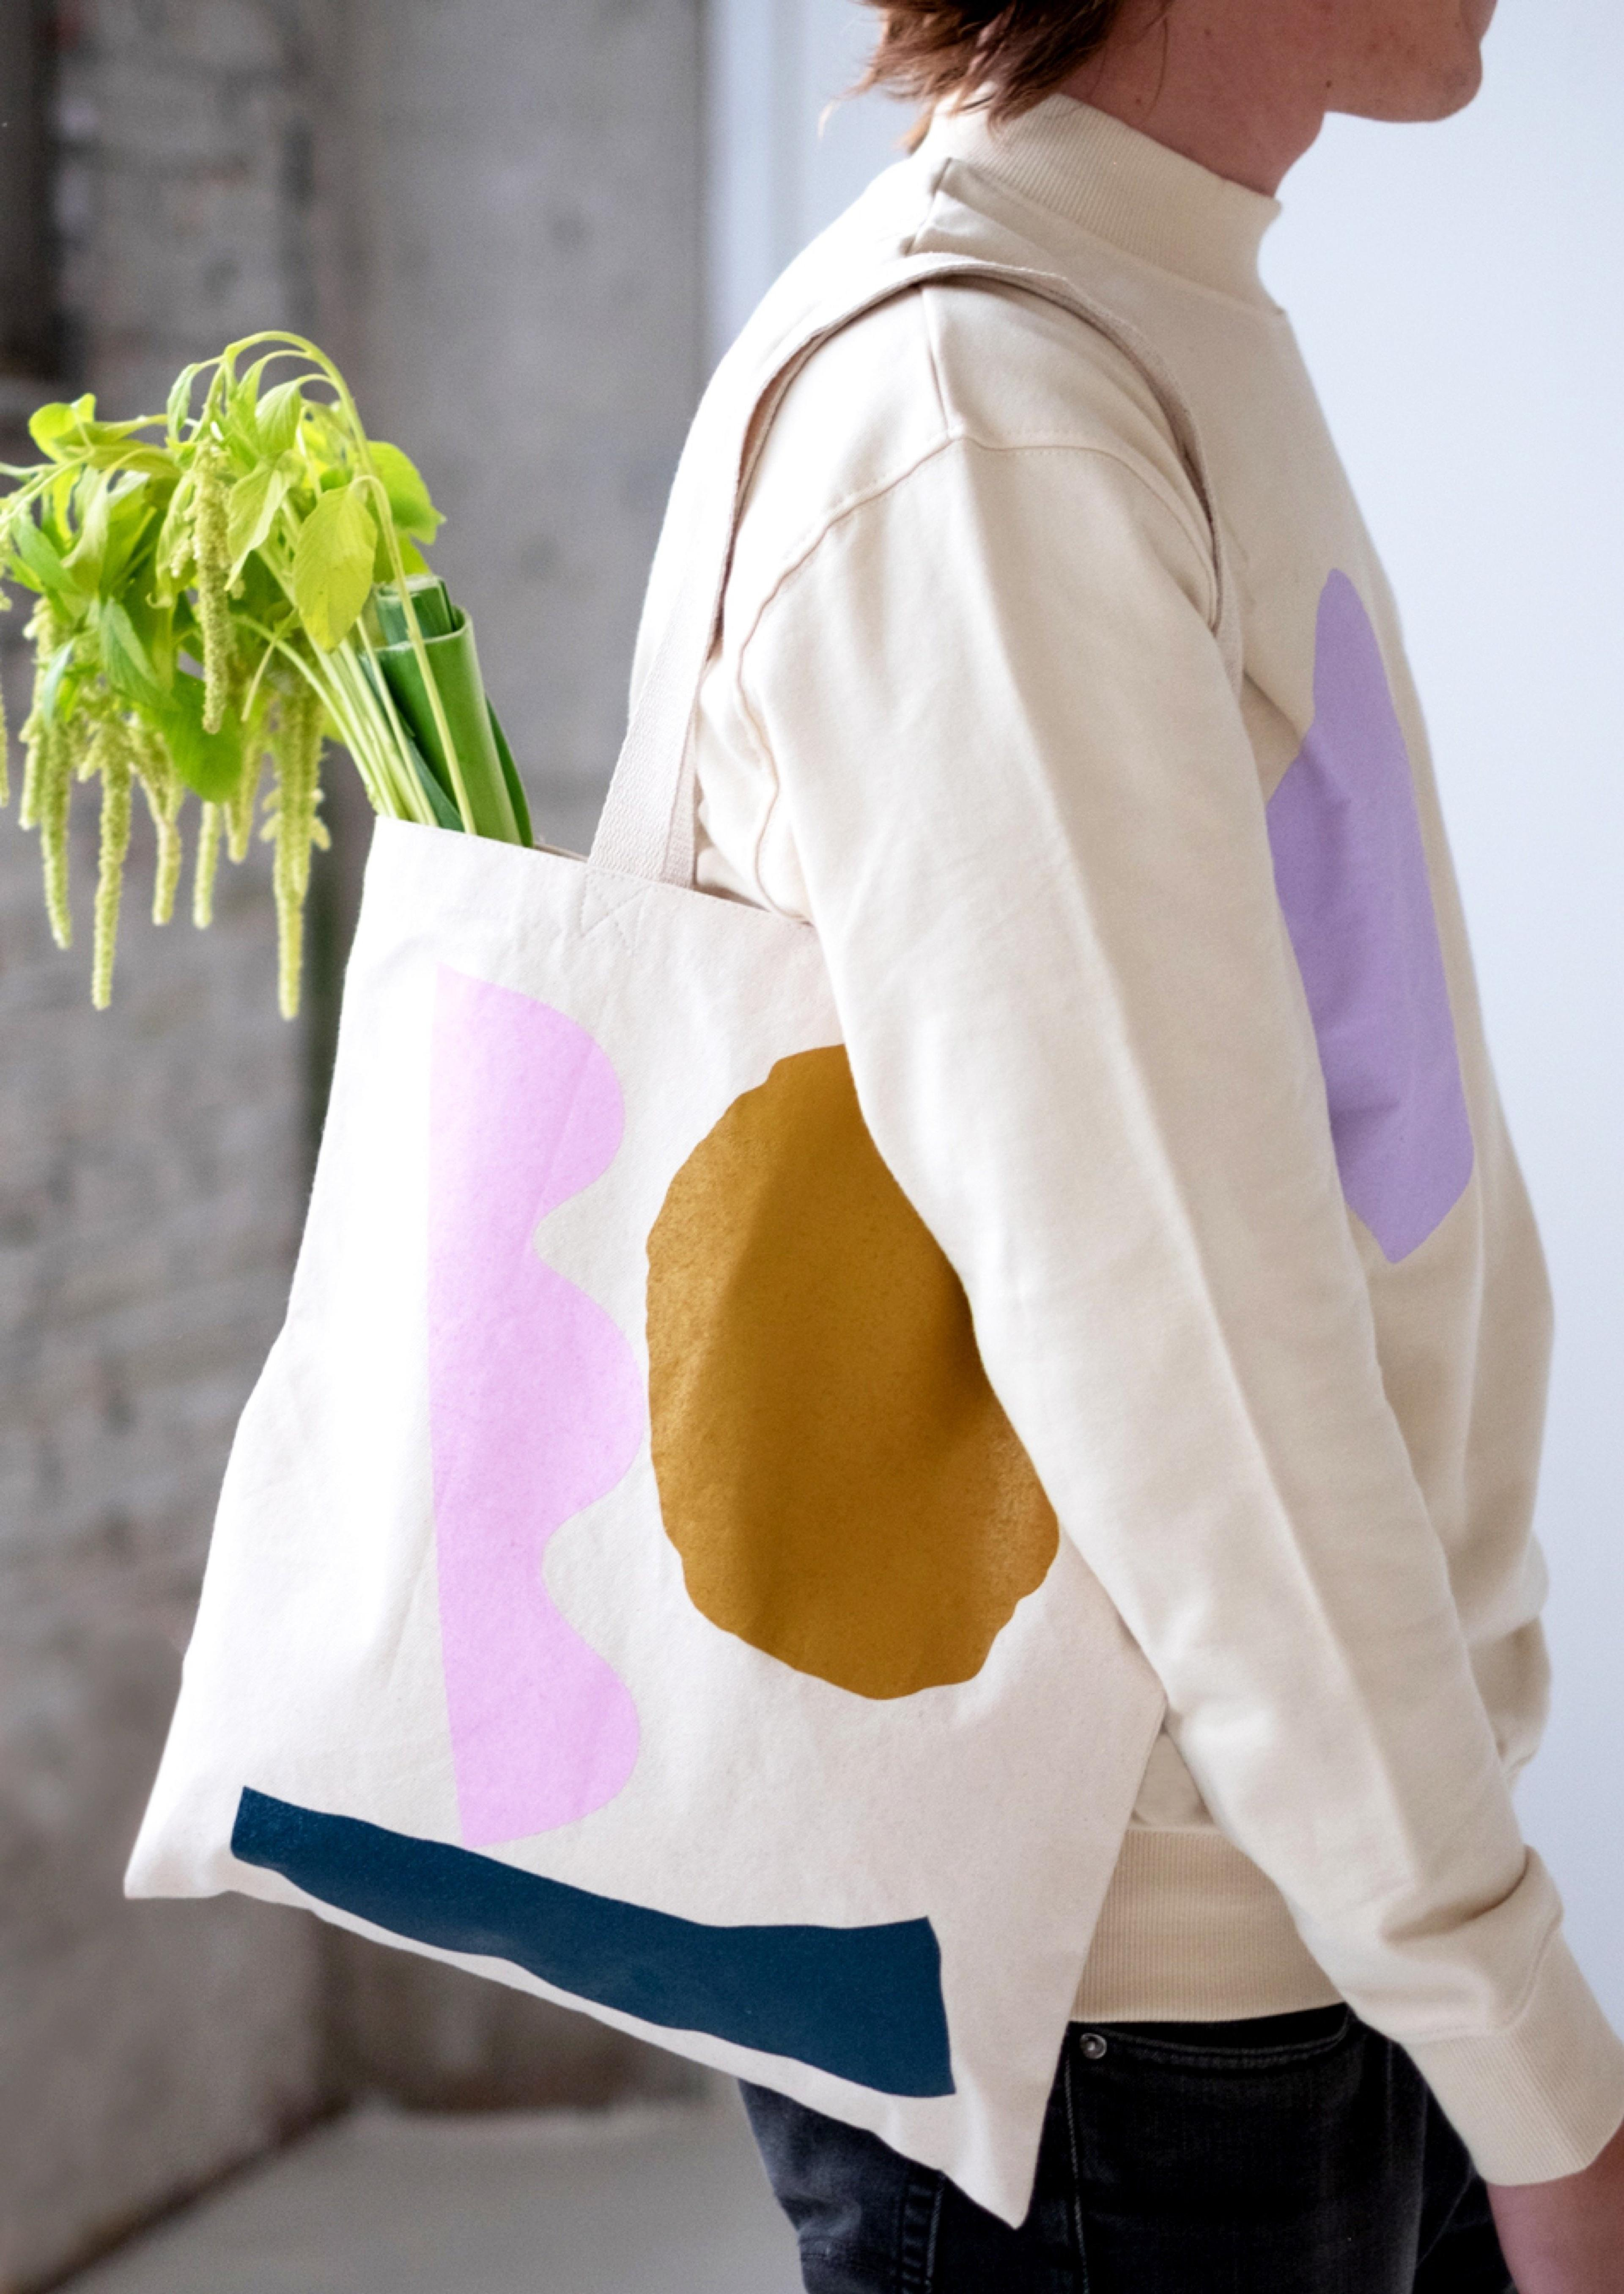 A Tote designed by Alex Proba, made by Kotn Supply